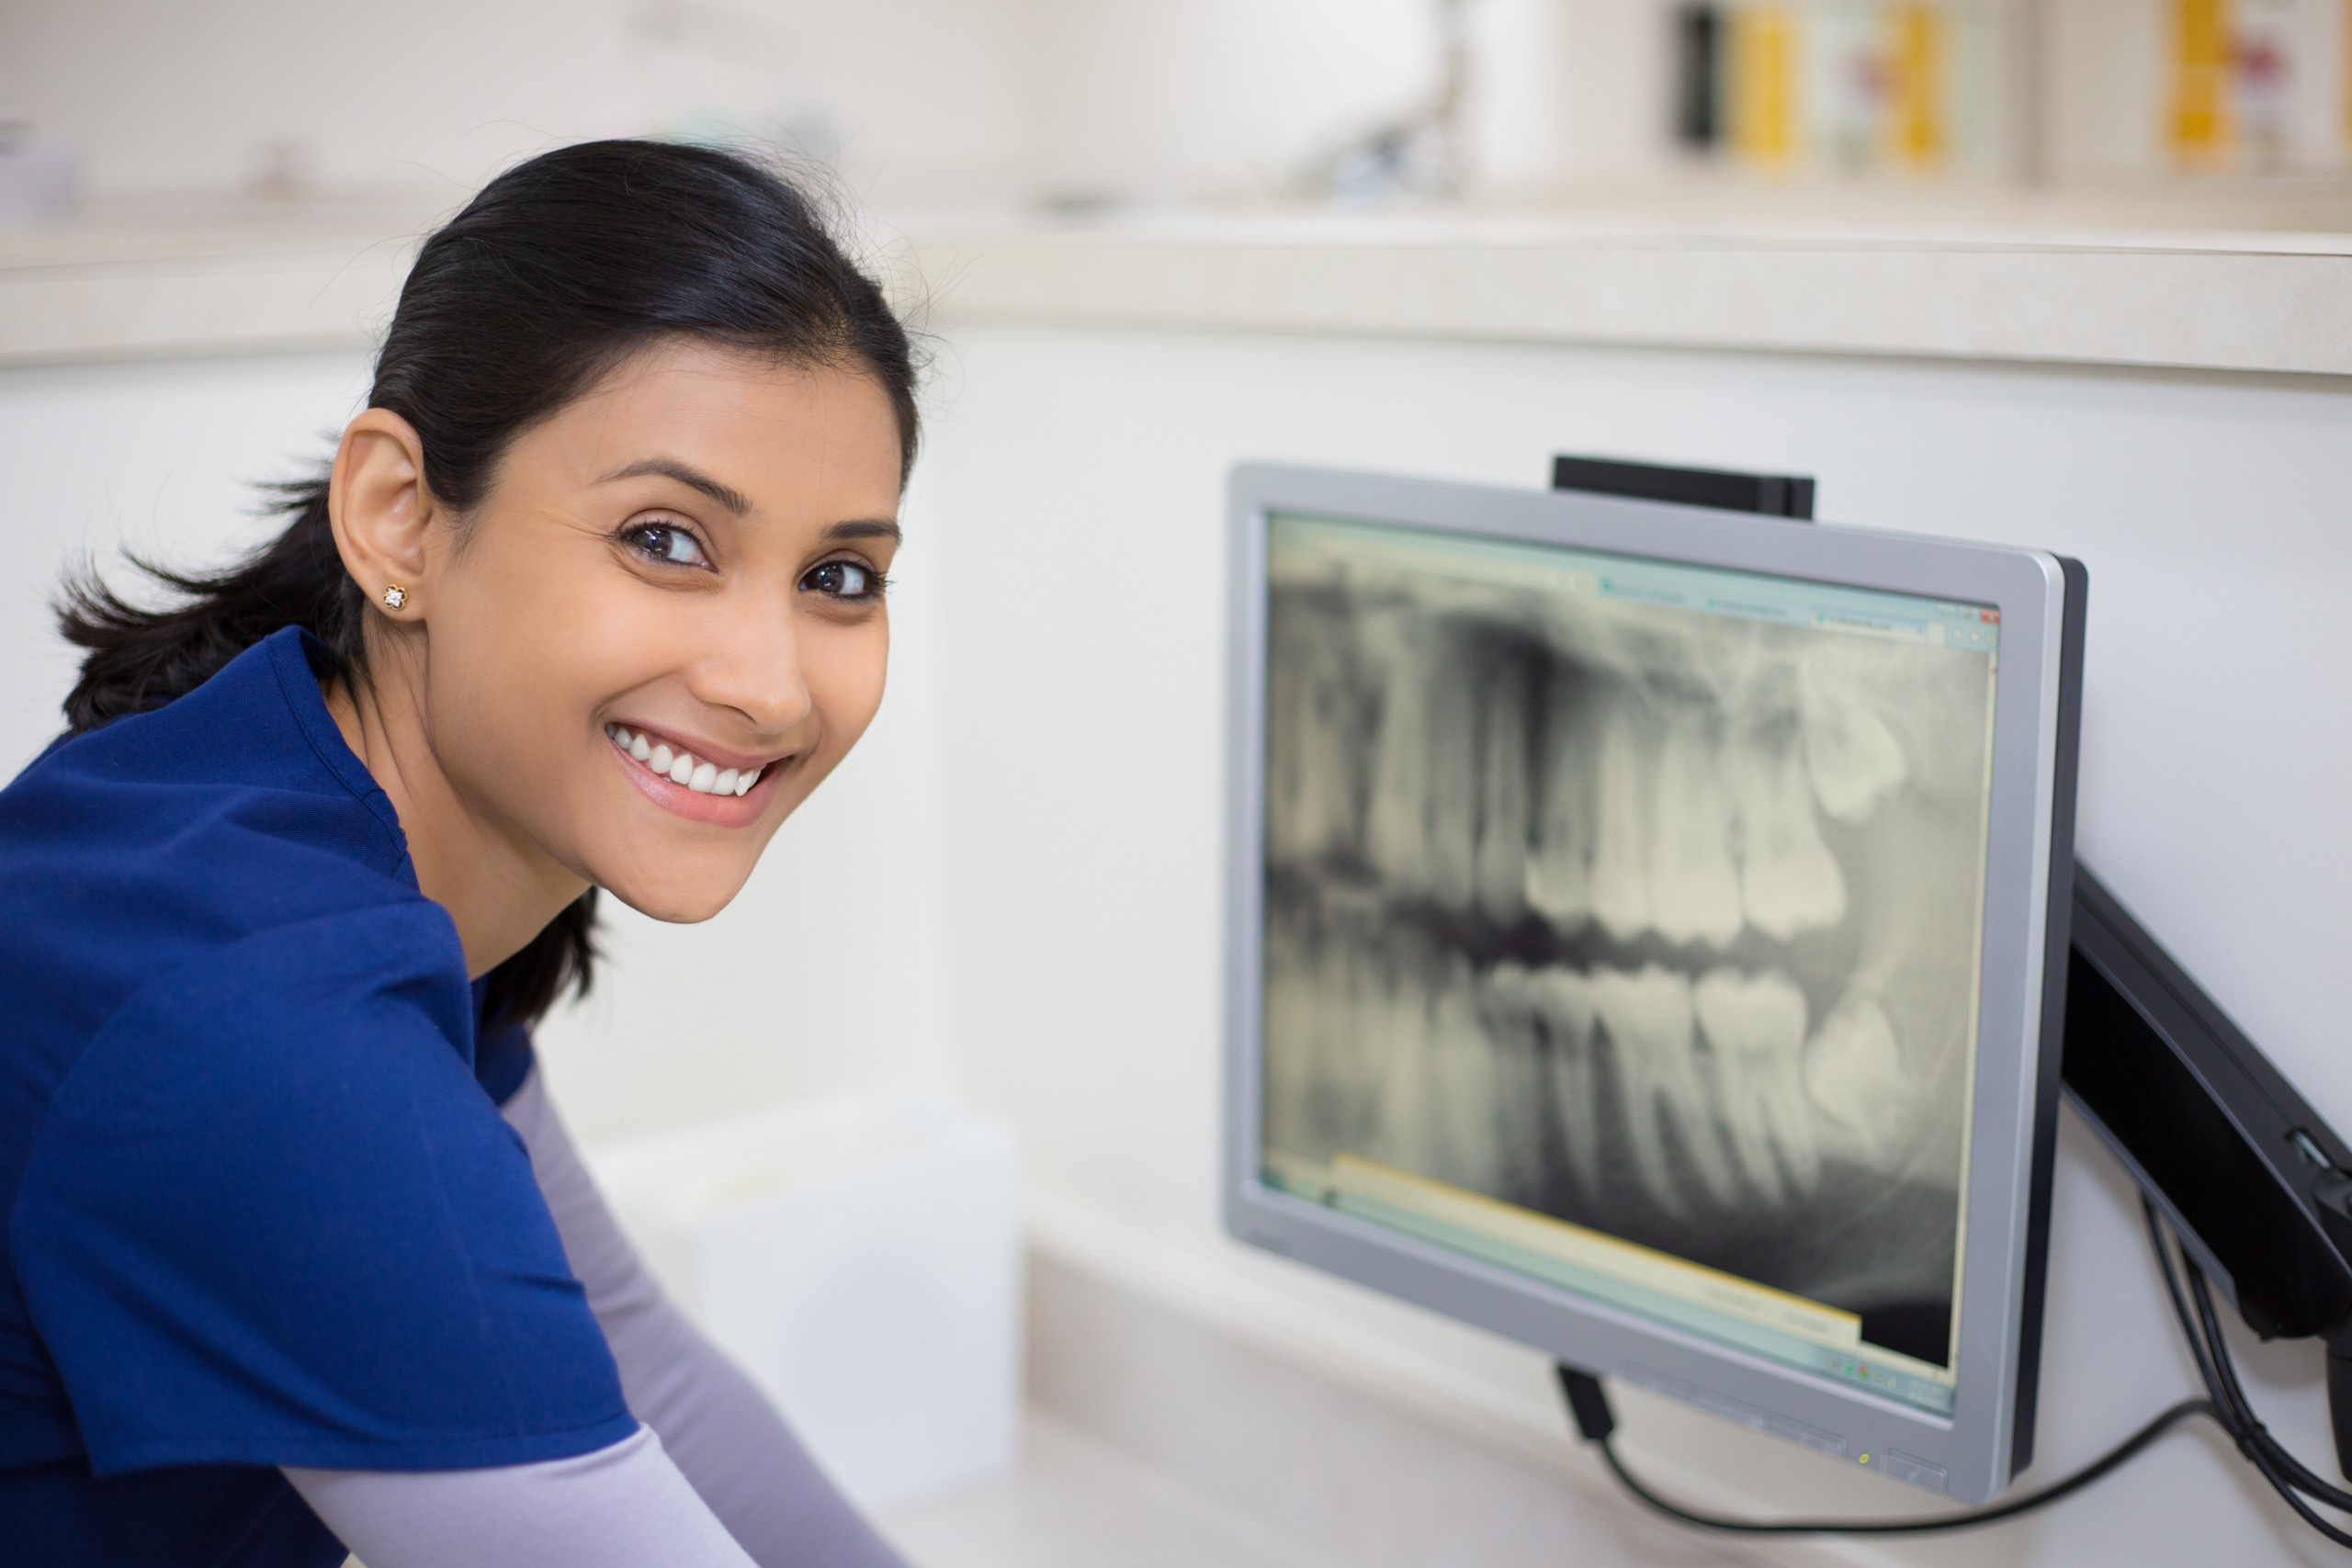 Person smiing at camera while a computer screen is near her showing xrays of teeth for dental jobs school online